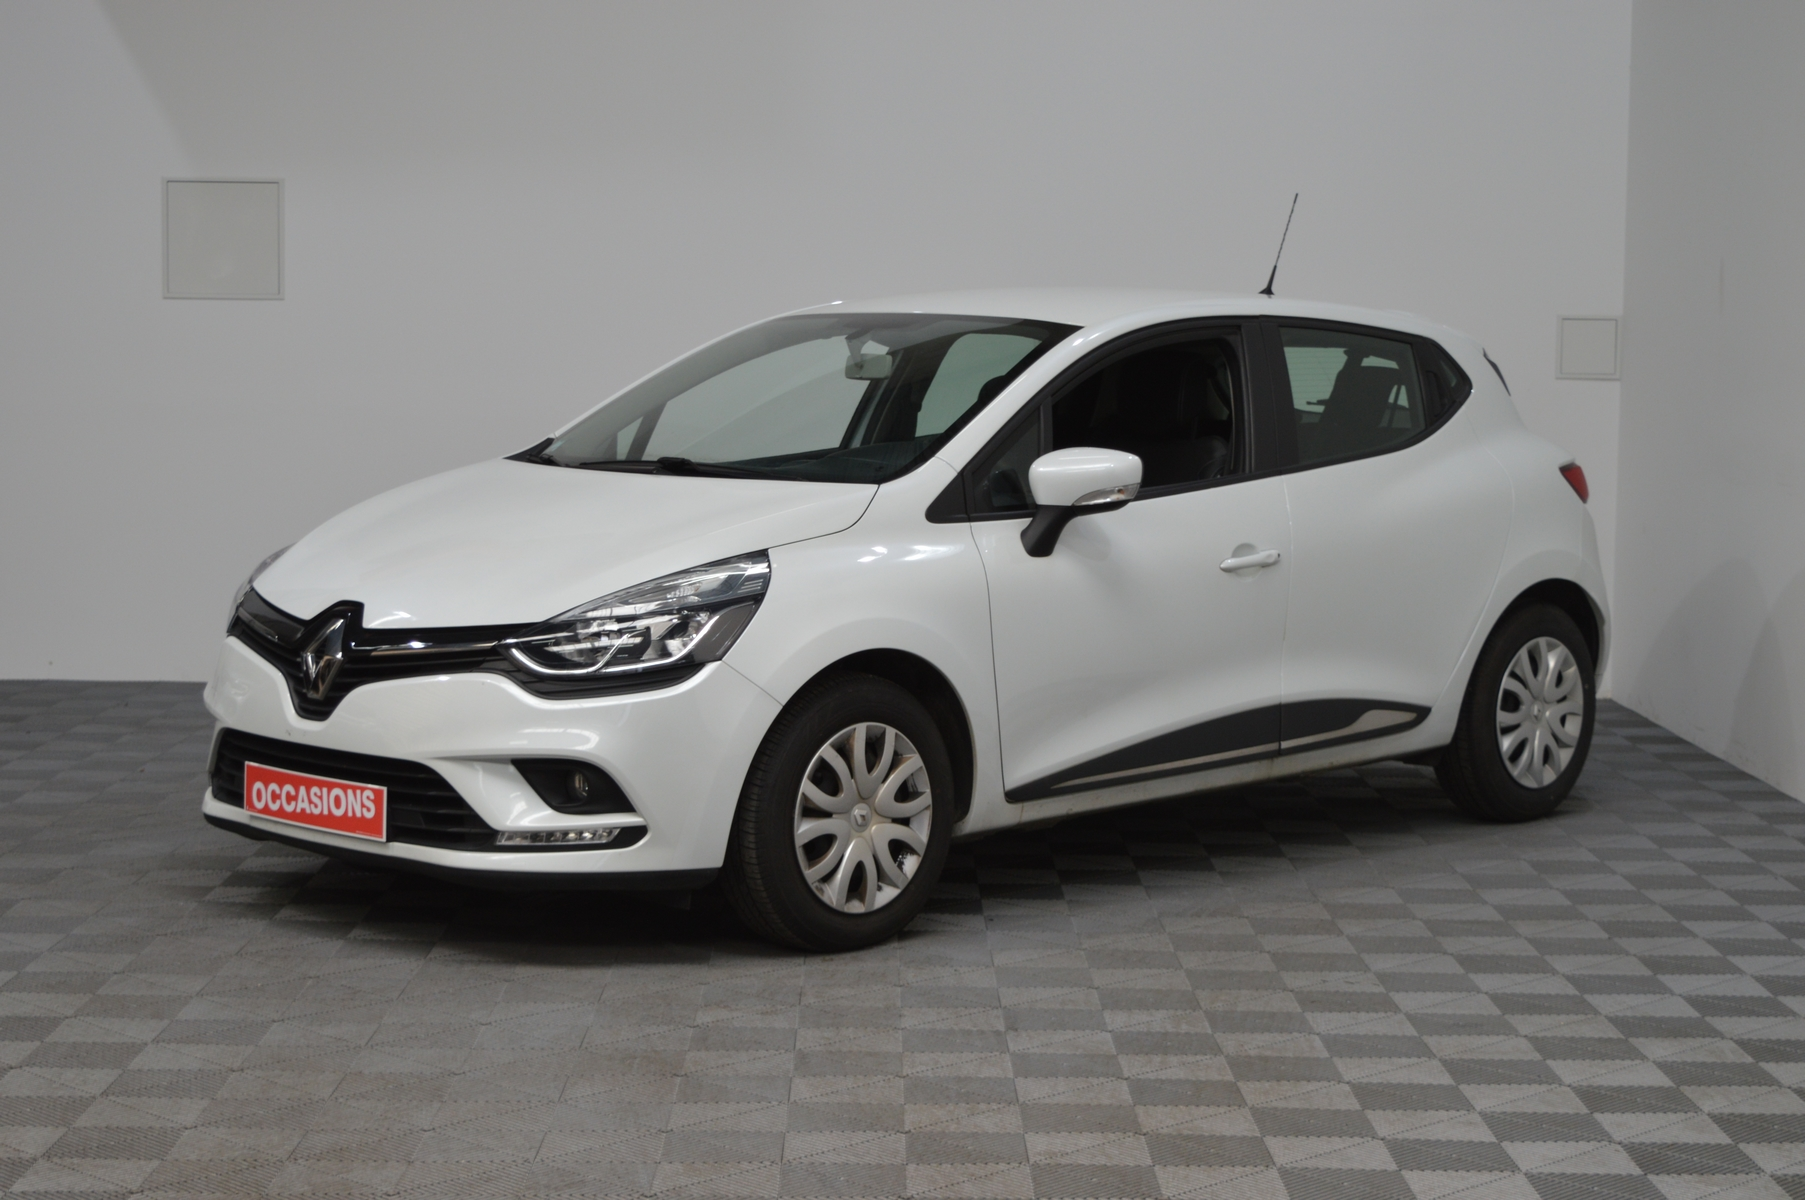 RENAULT CLIO IV BUSINESS dCi 90 E6C Business d'occasion